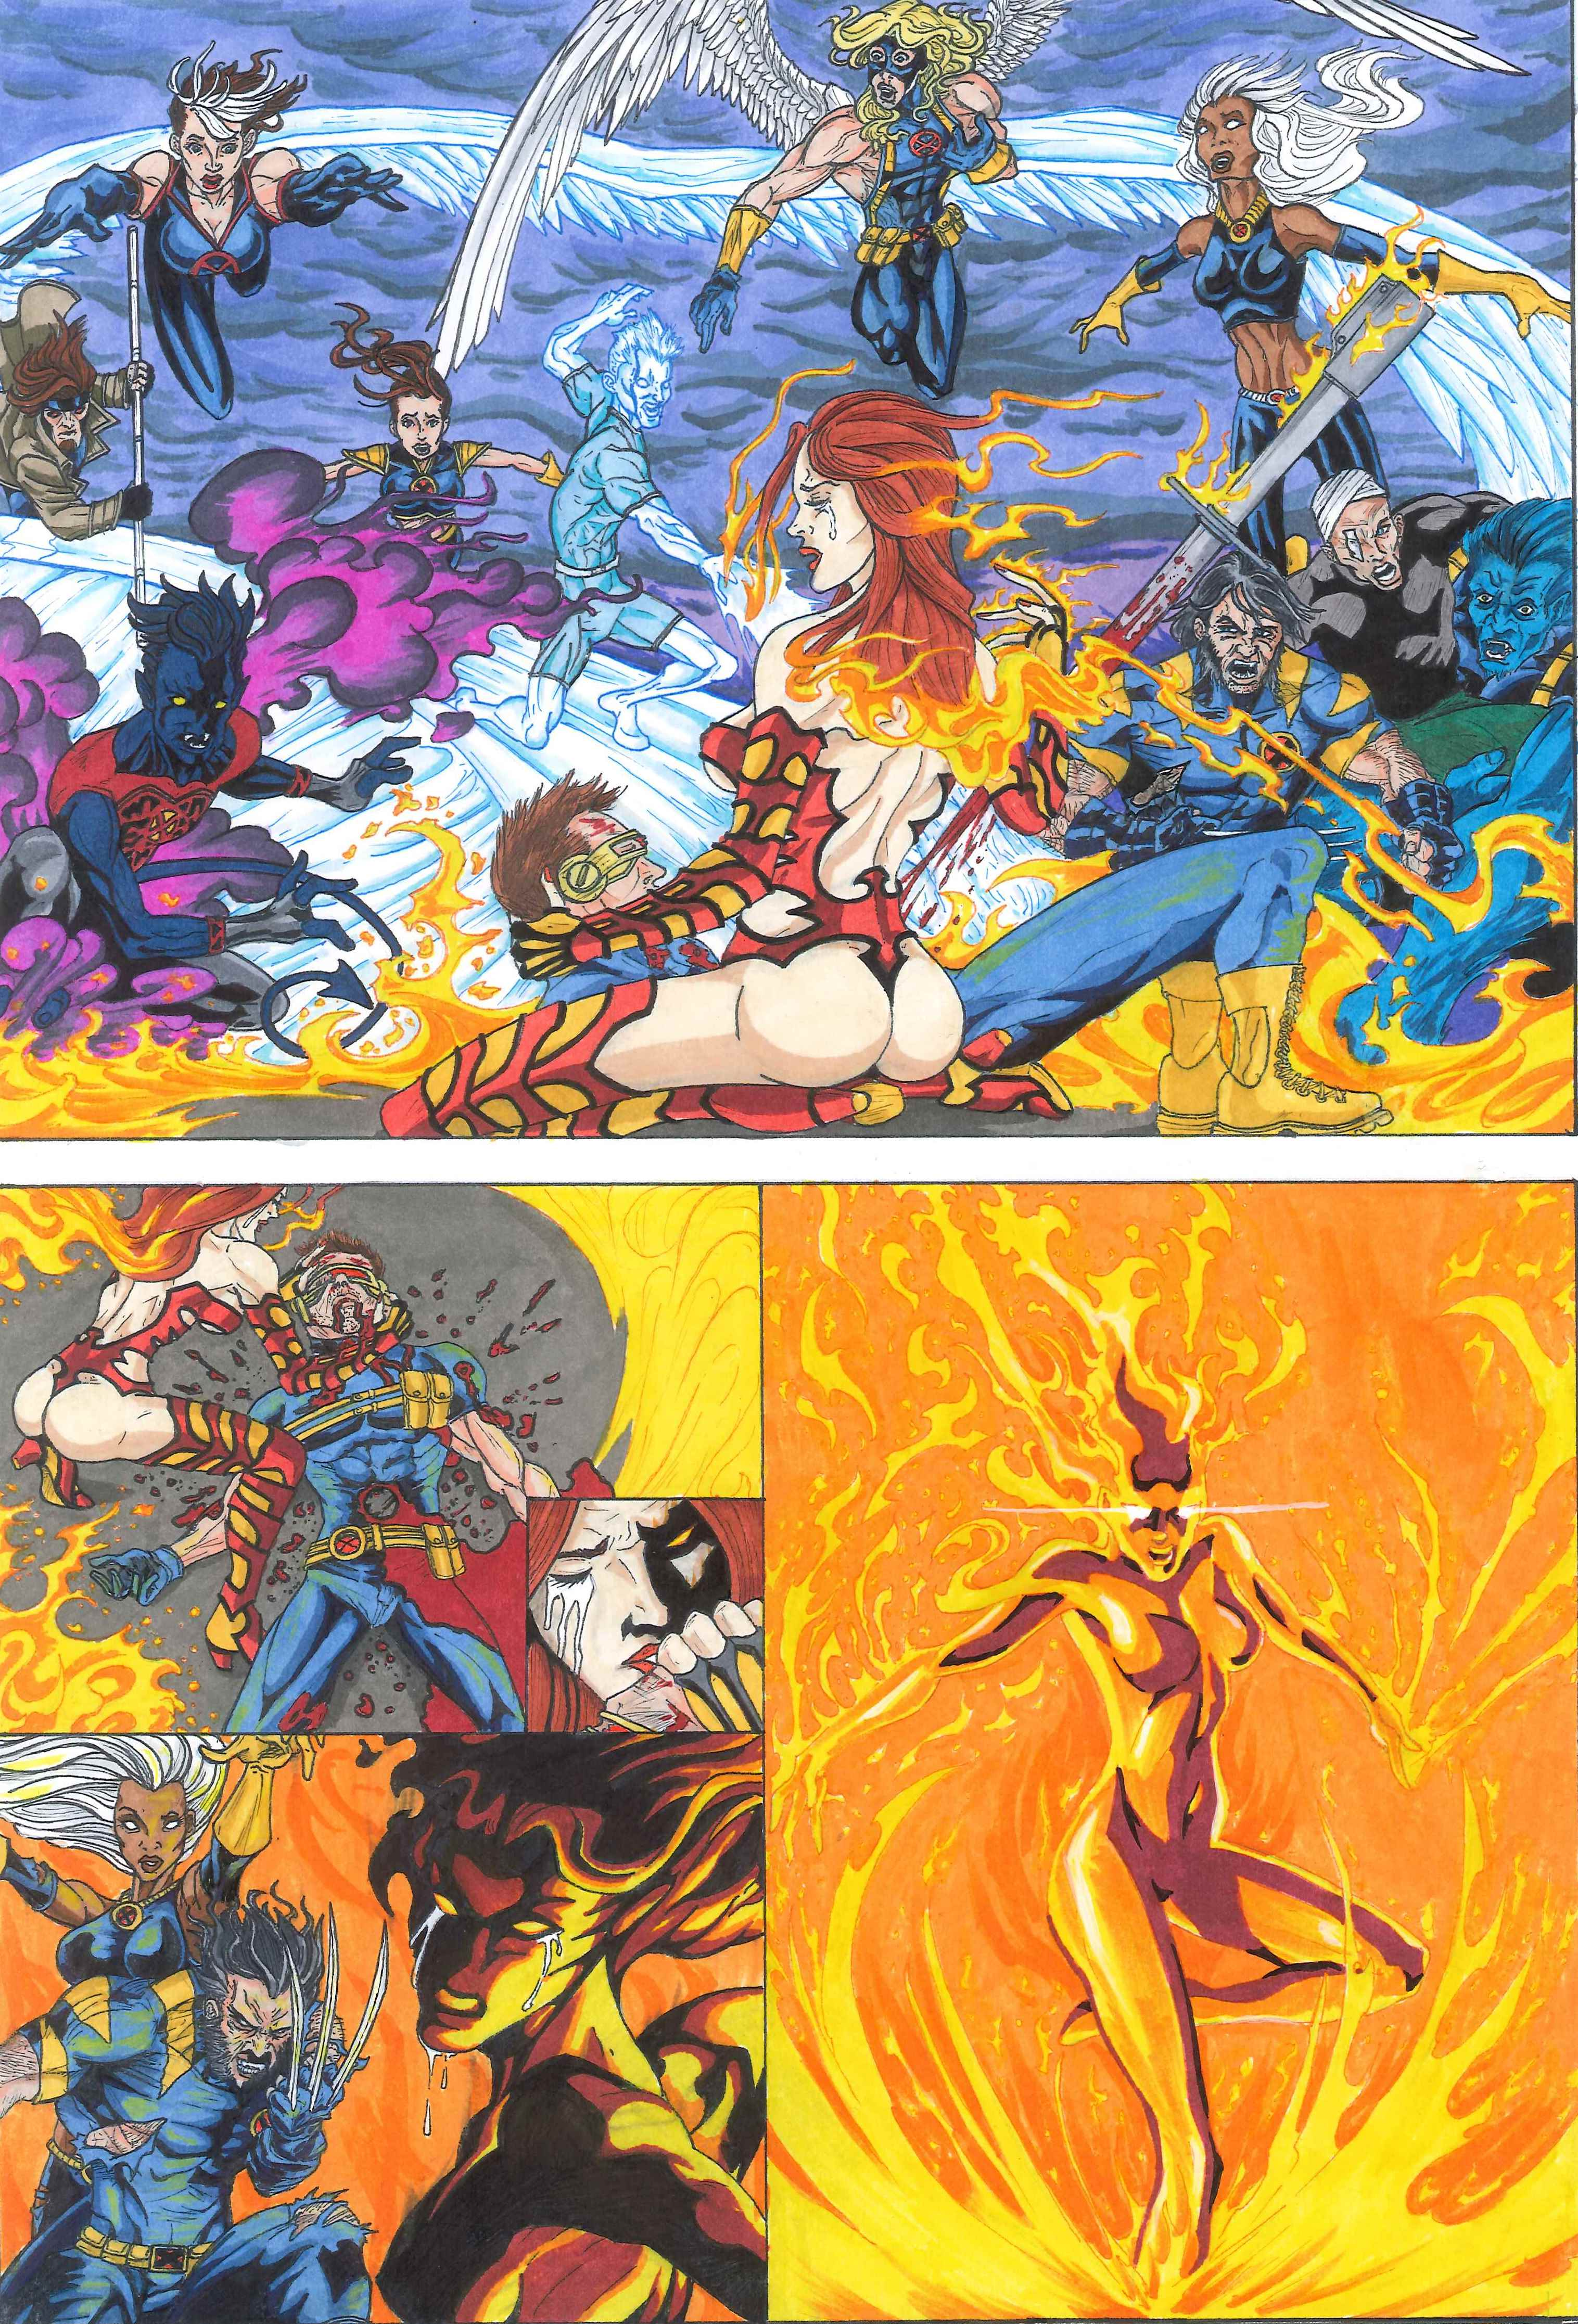 X-men Supreme Issue 68: The Phoenix Saga Part 1 Panel 3